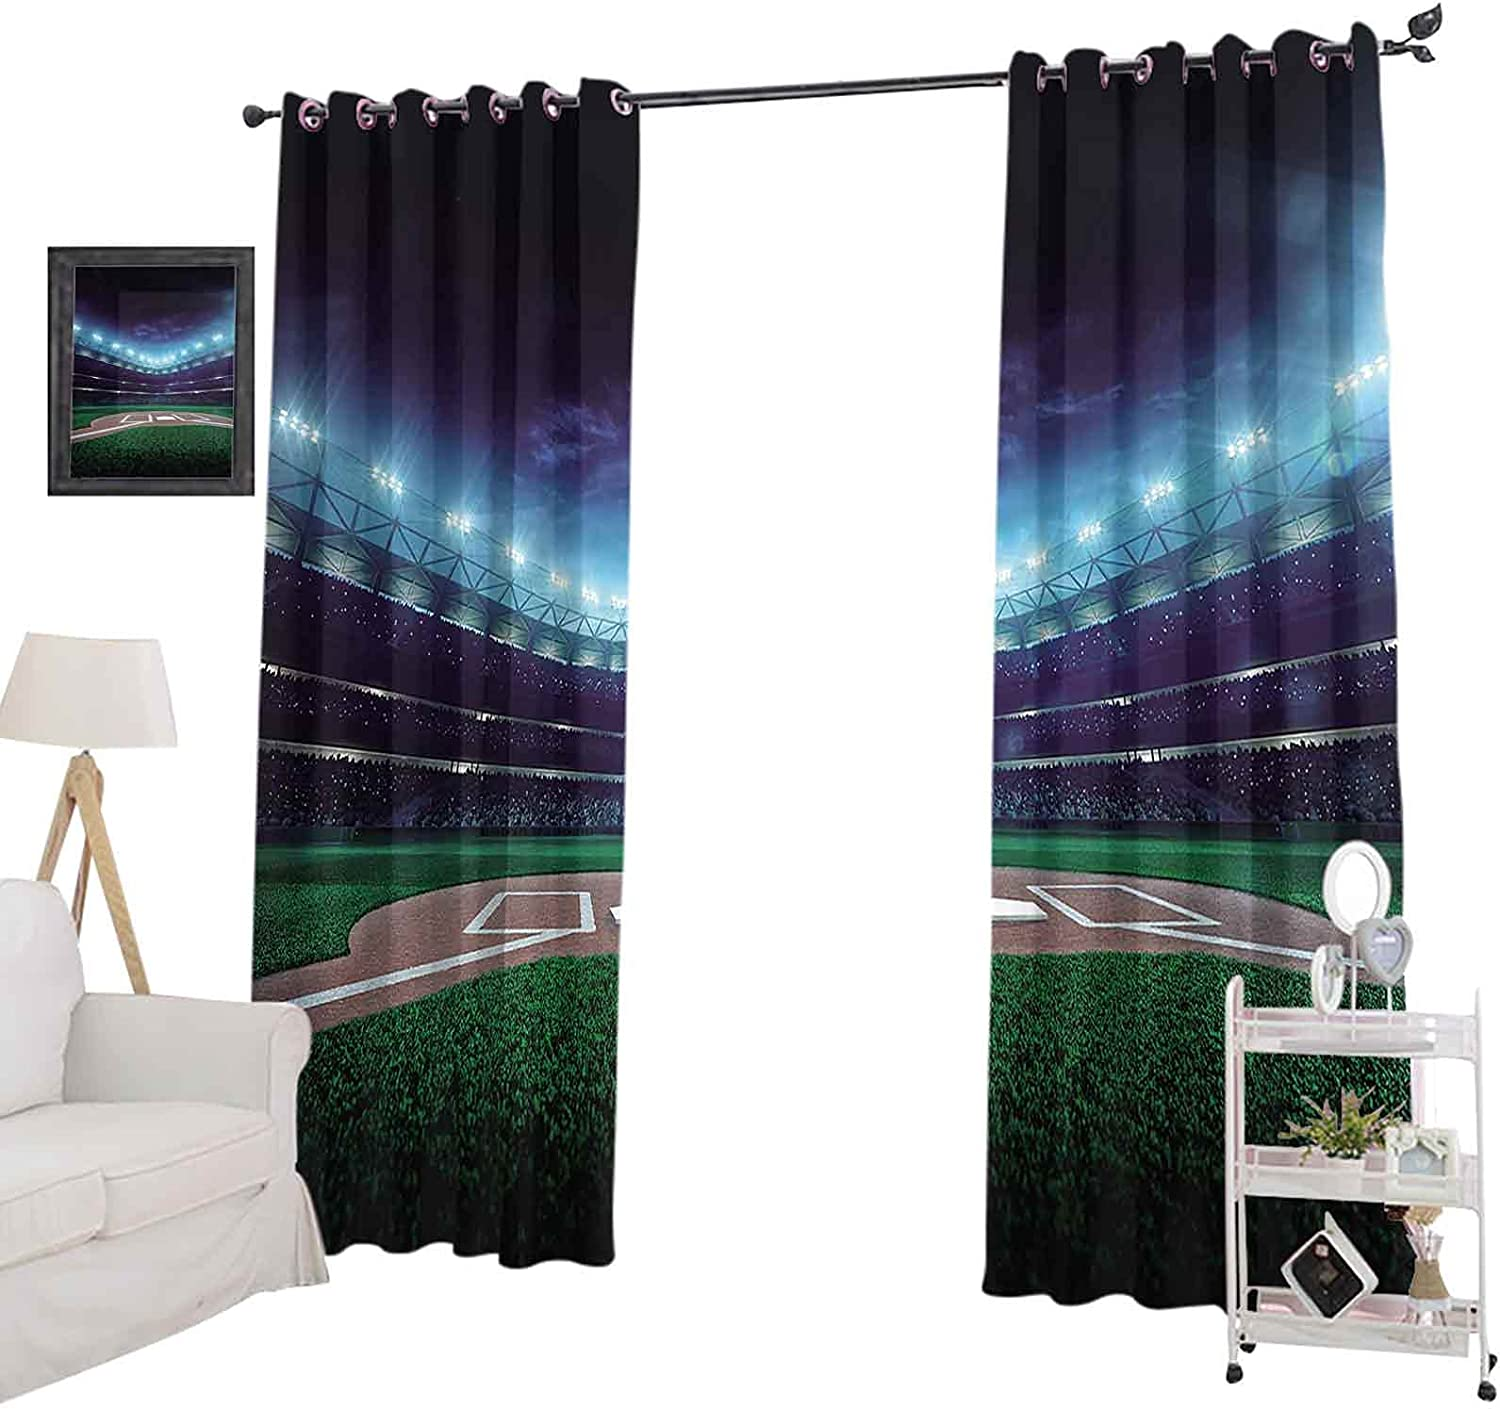 All stores are sold Curtains 72 Inches Long Blackout Max 44% OFF Curtain for Room P Panels Girls